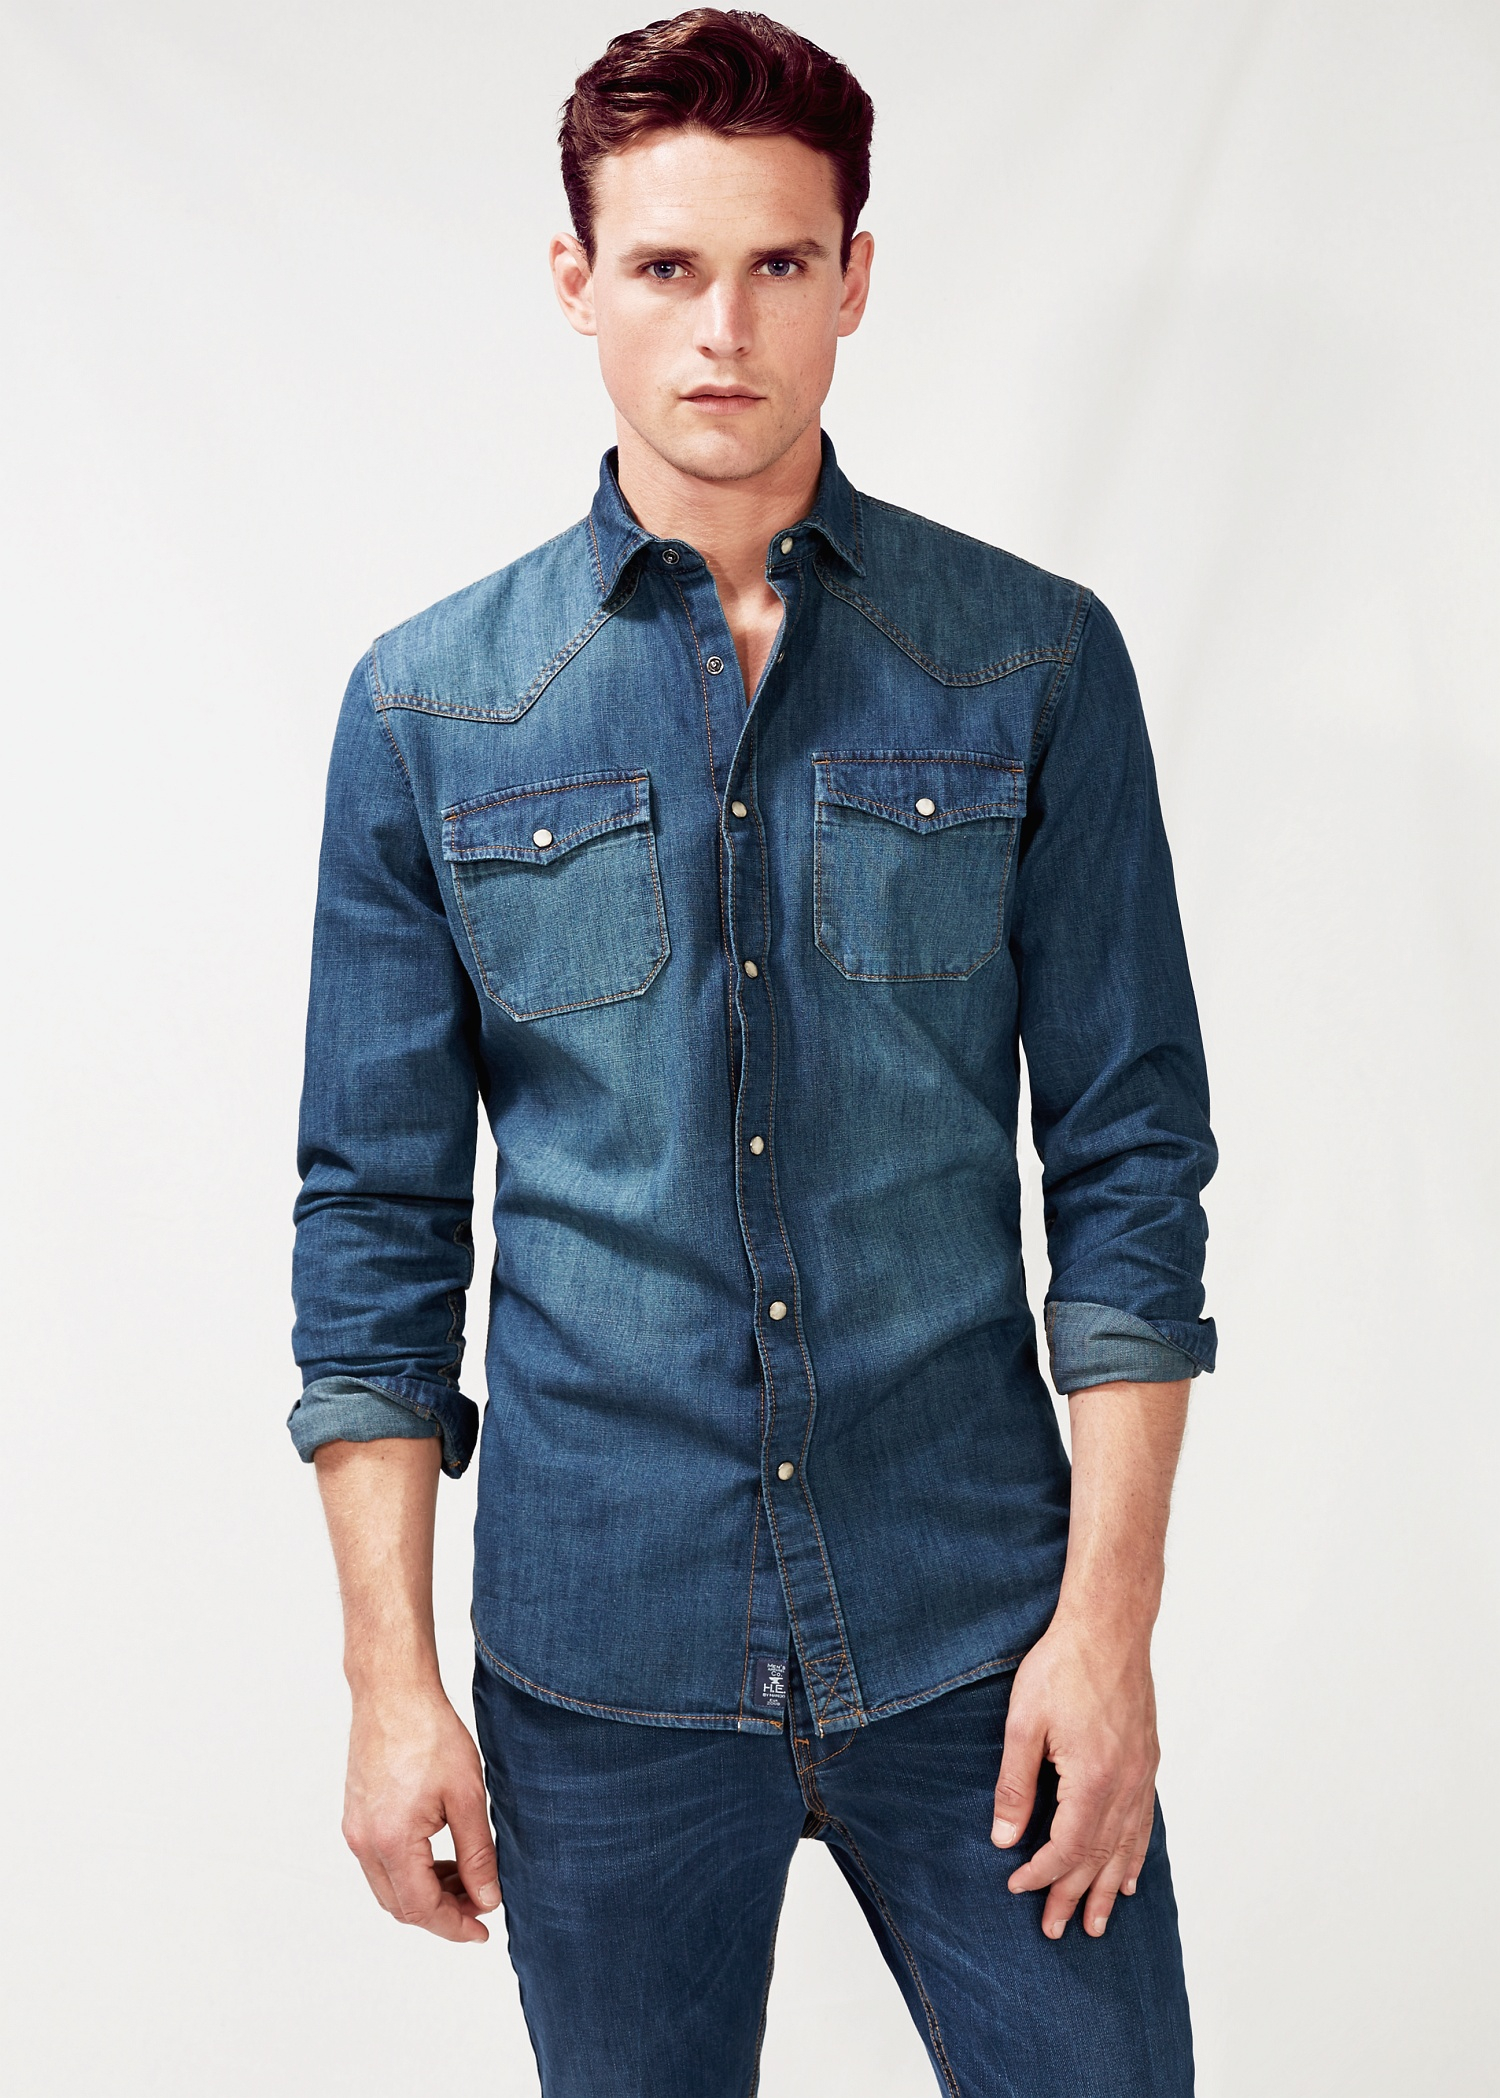 This is a classic-looking, all-American denim shirt that is made for men, but also one I think could be worn by women as well, especially for just doing things around the house. Outside of the house, this shirt could be worn for casual occasions or everyday things such as going to the store.